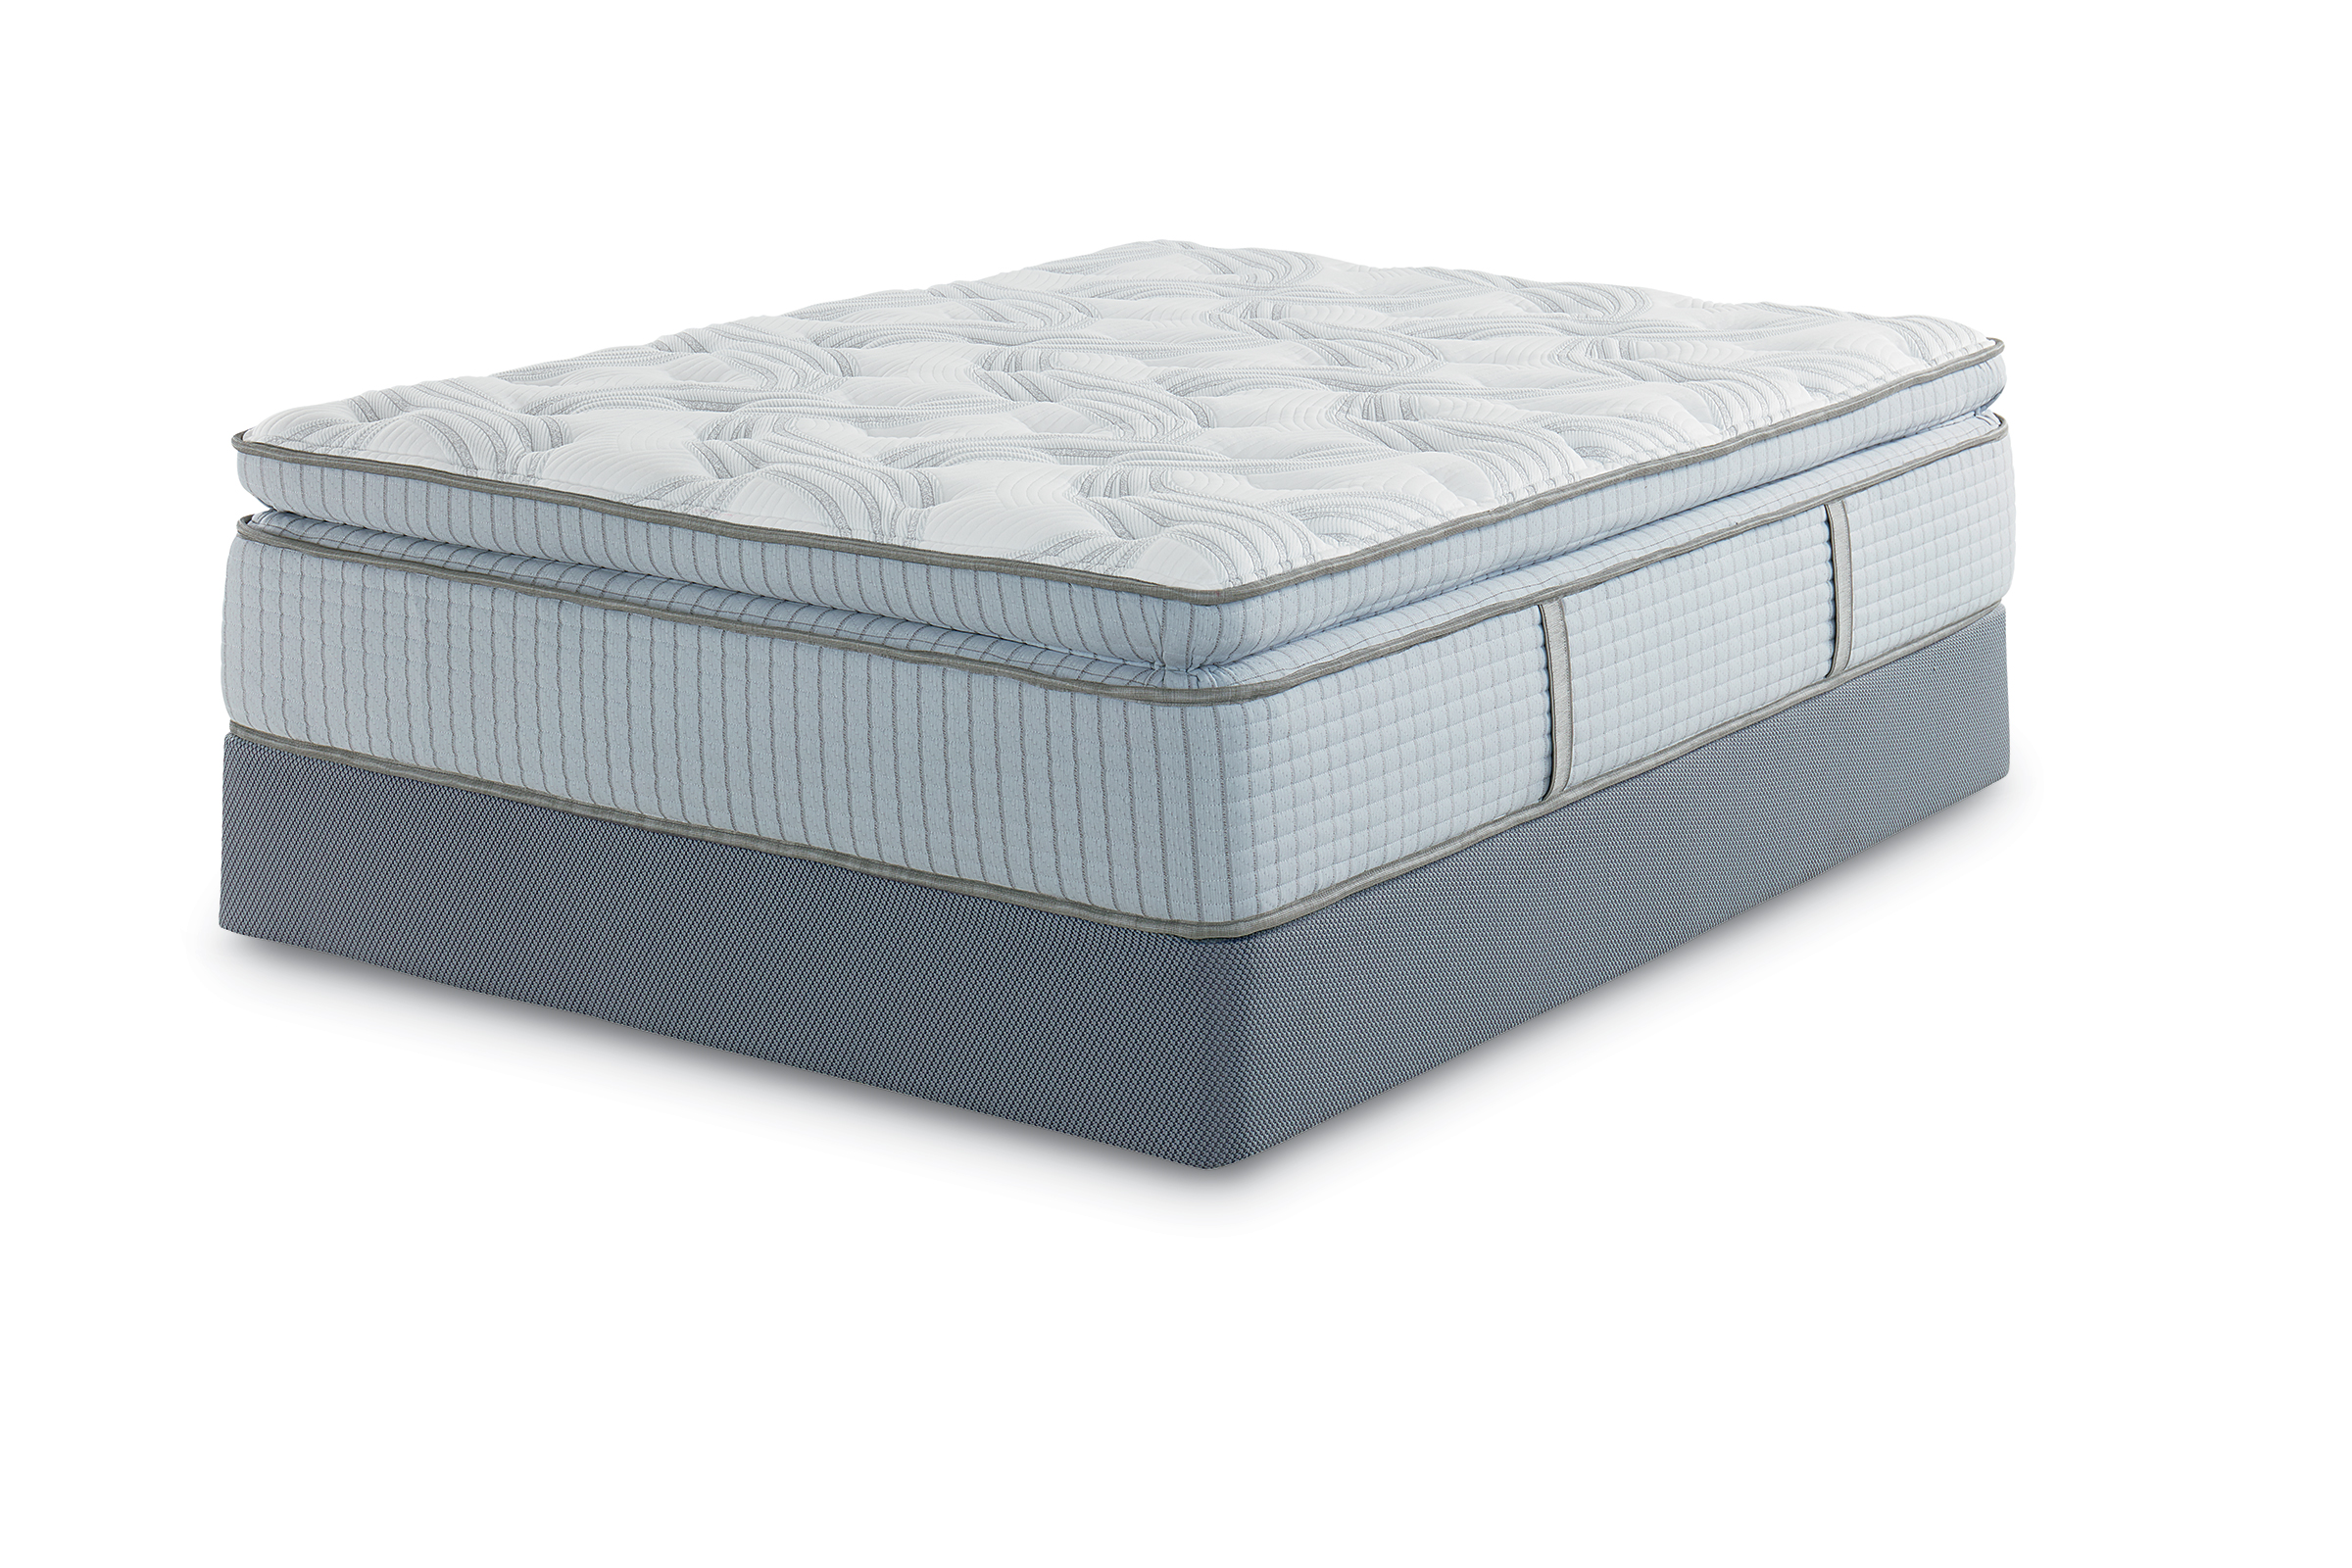 Pillow Top King Mattress Scott Living By Restonic Lanark Super Pillow Top King Mattress